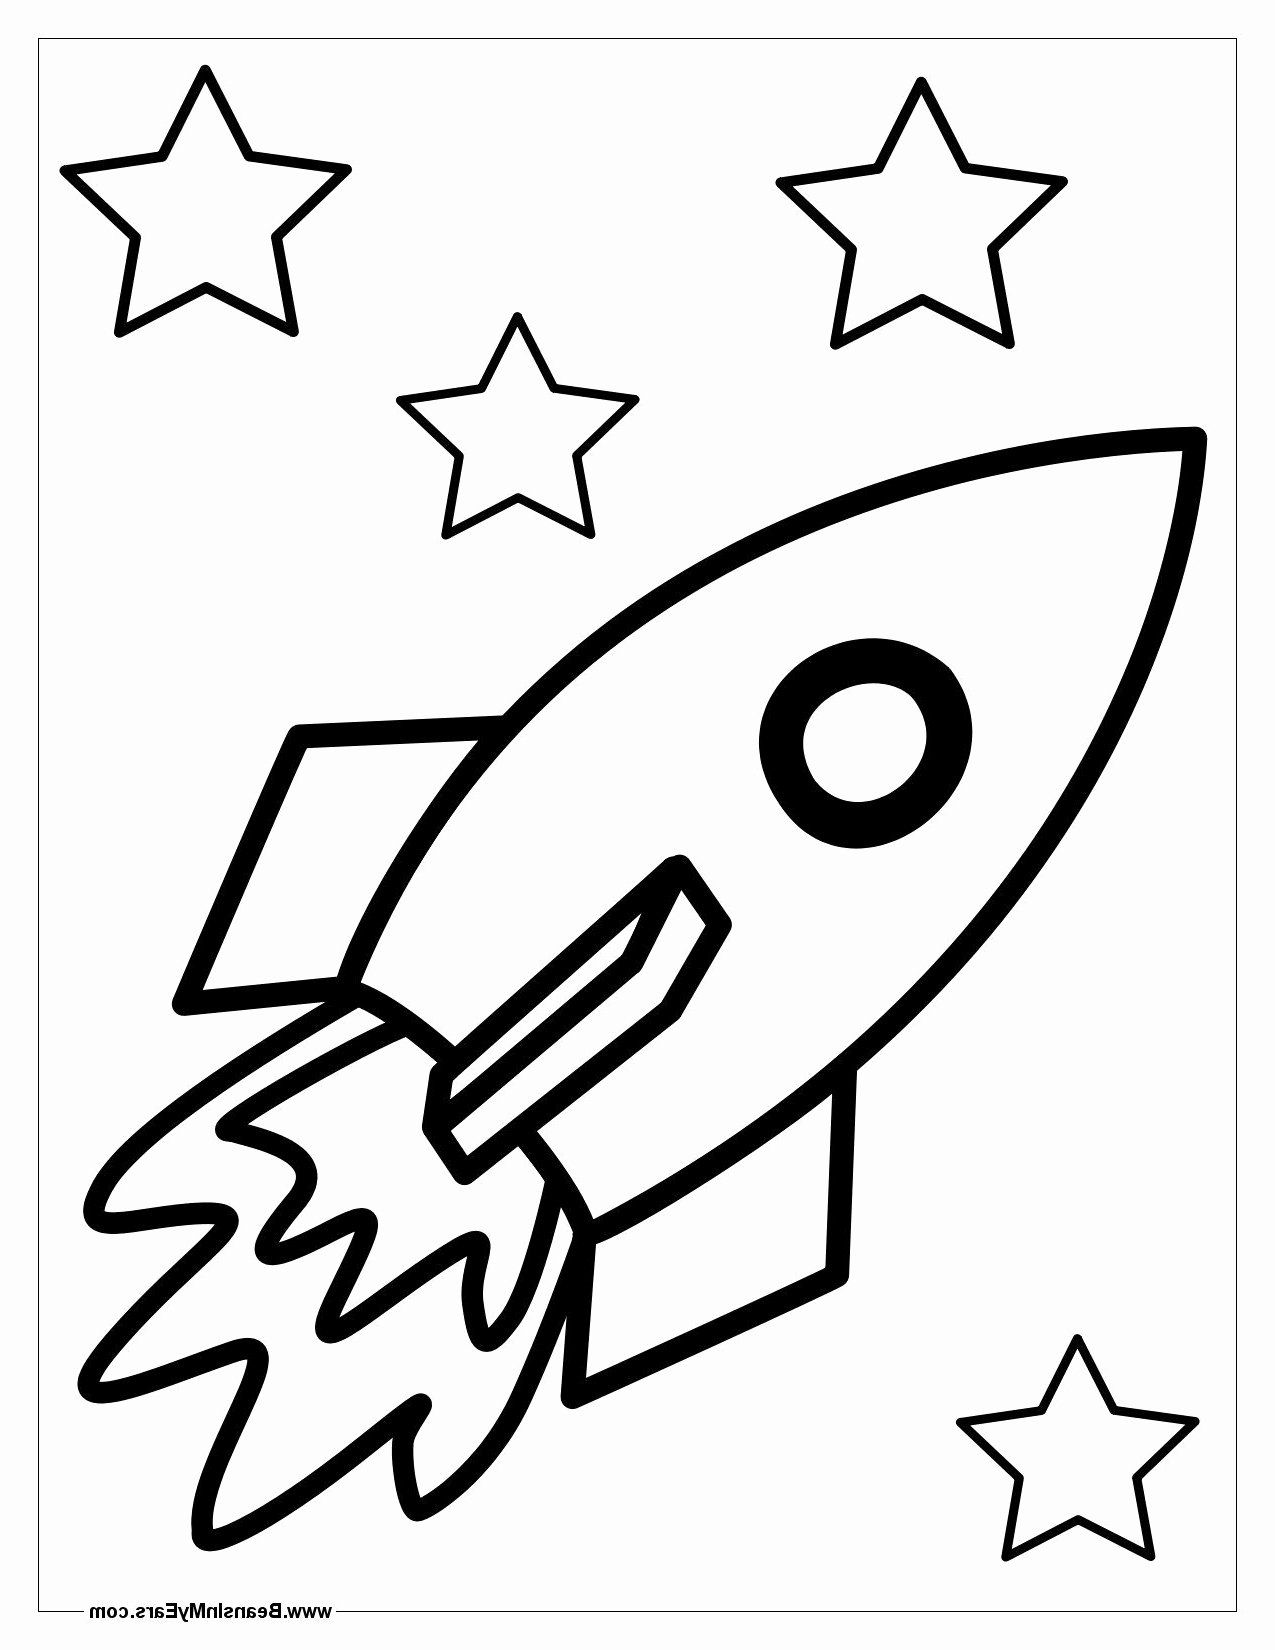 Space Ship Coloring Pages Elegant 22 Best Collection Rocket Ship Coloring Sheet Cool Coloring Pages Mermaid Coloring Pages Angel Coloring Pages